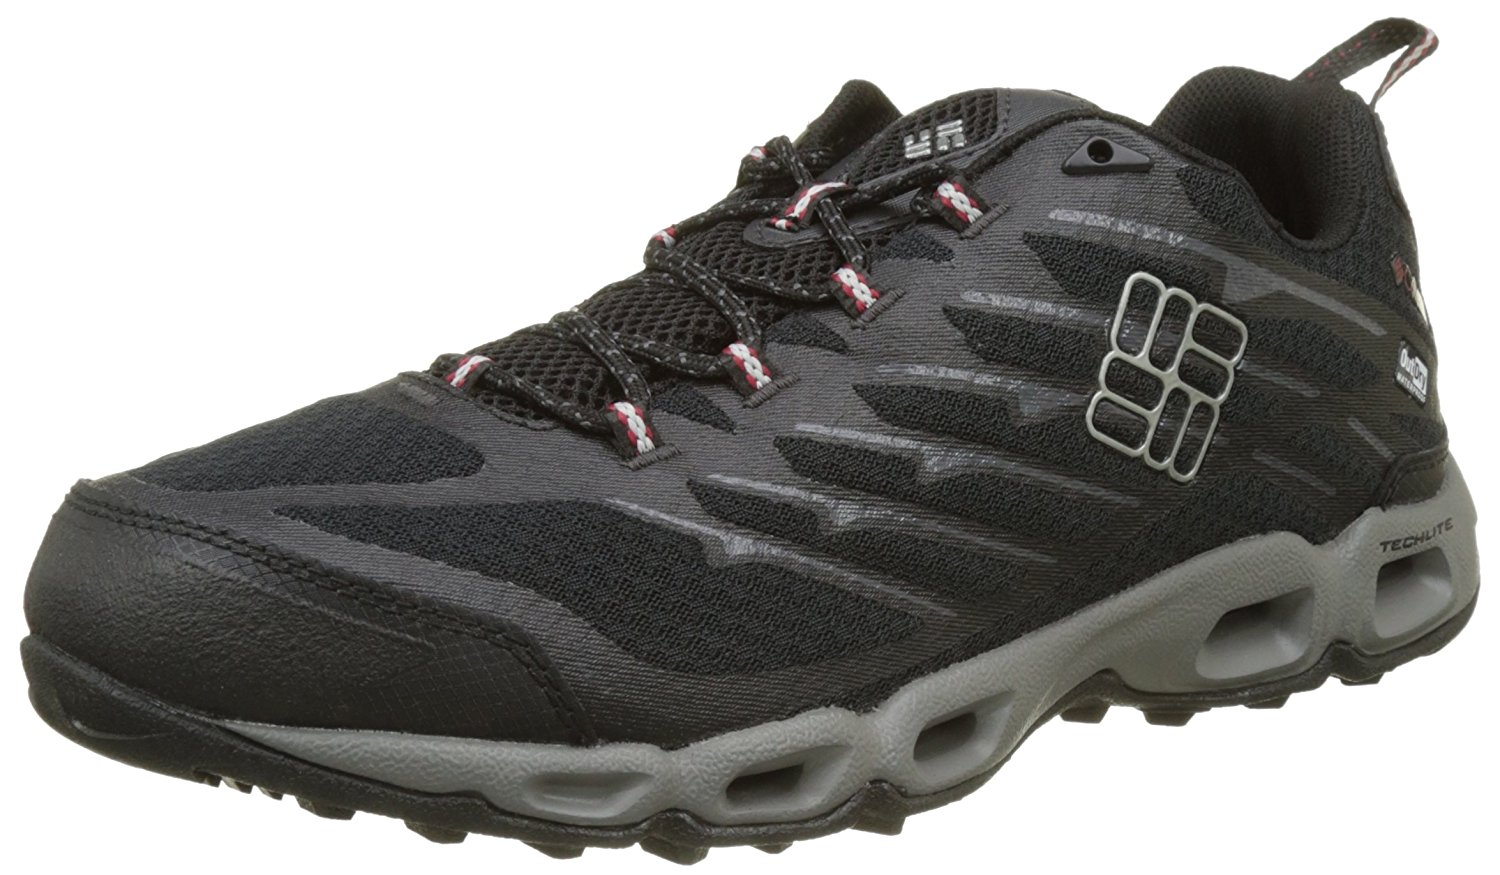 Columbia men's ventrailia II outdry outdoor sports shoes